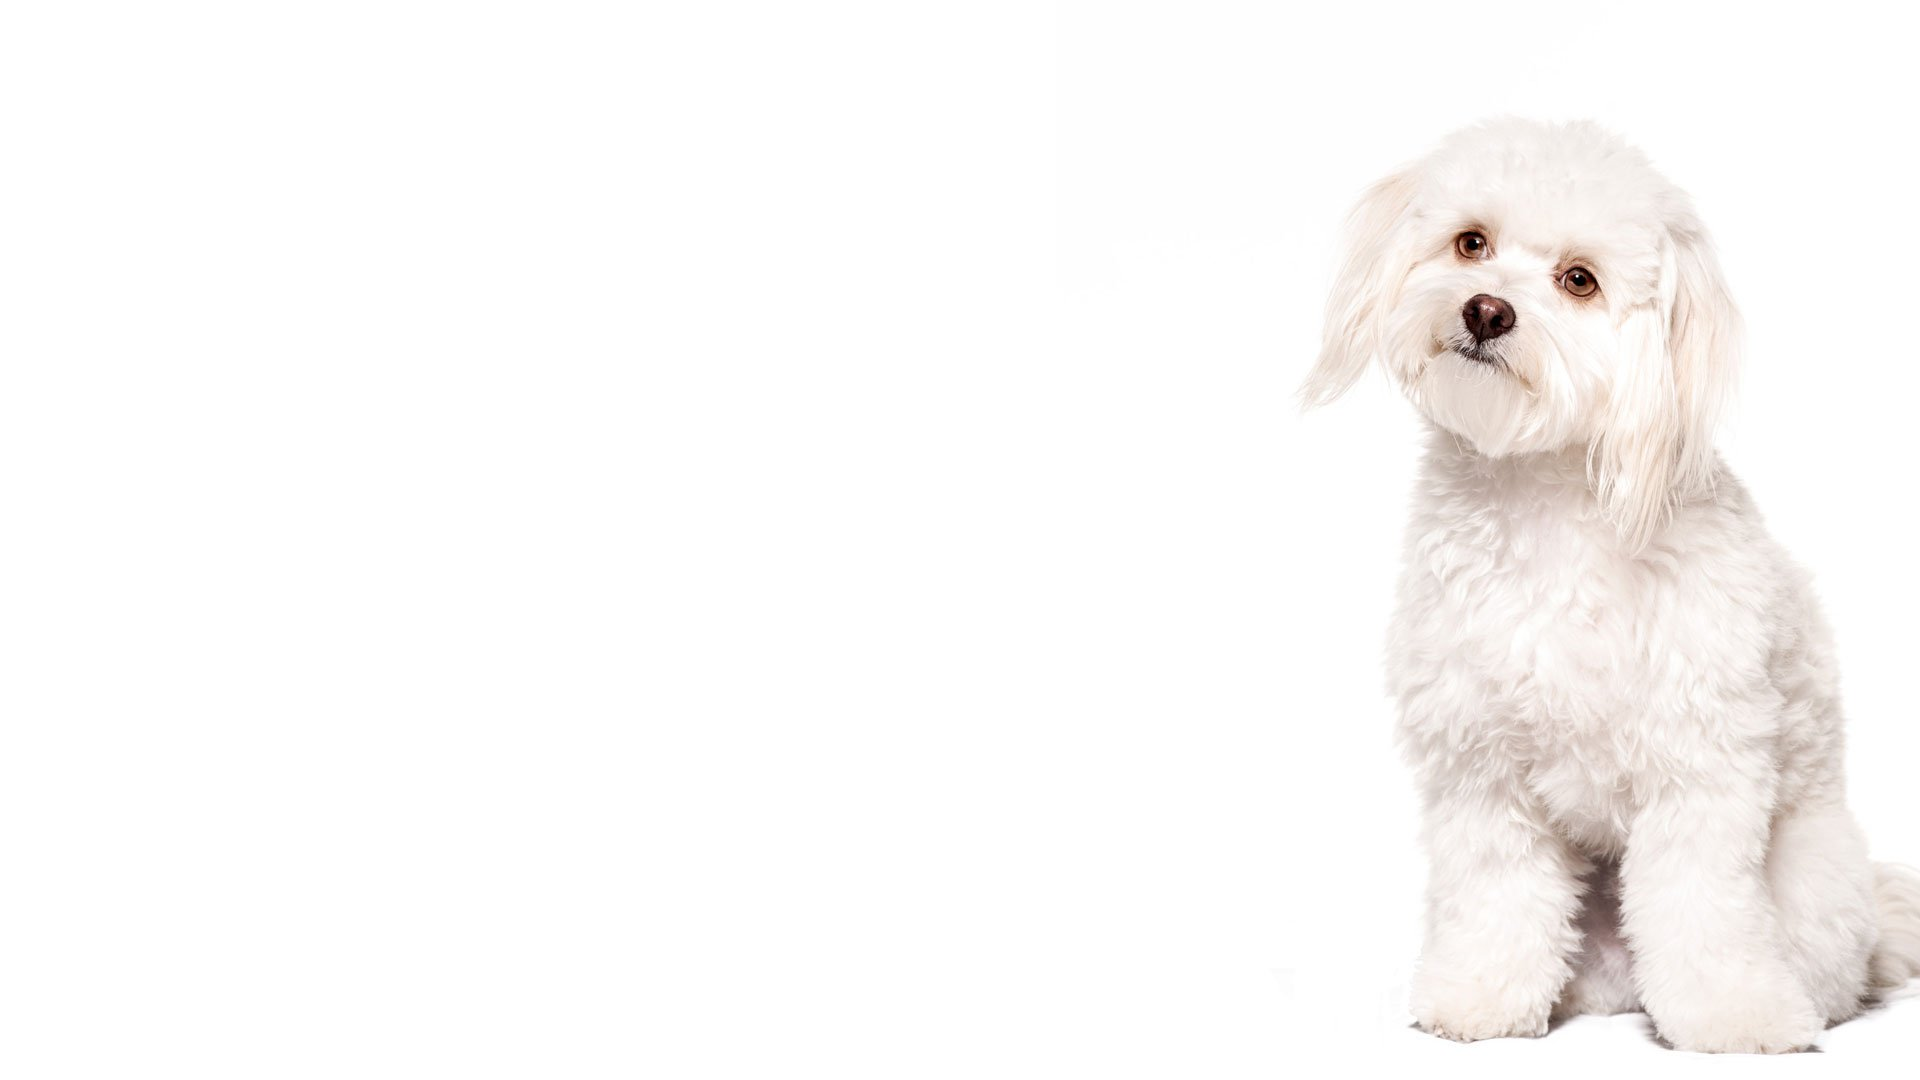 dog-white-bichon-frise